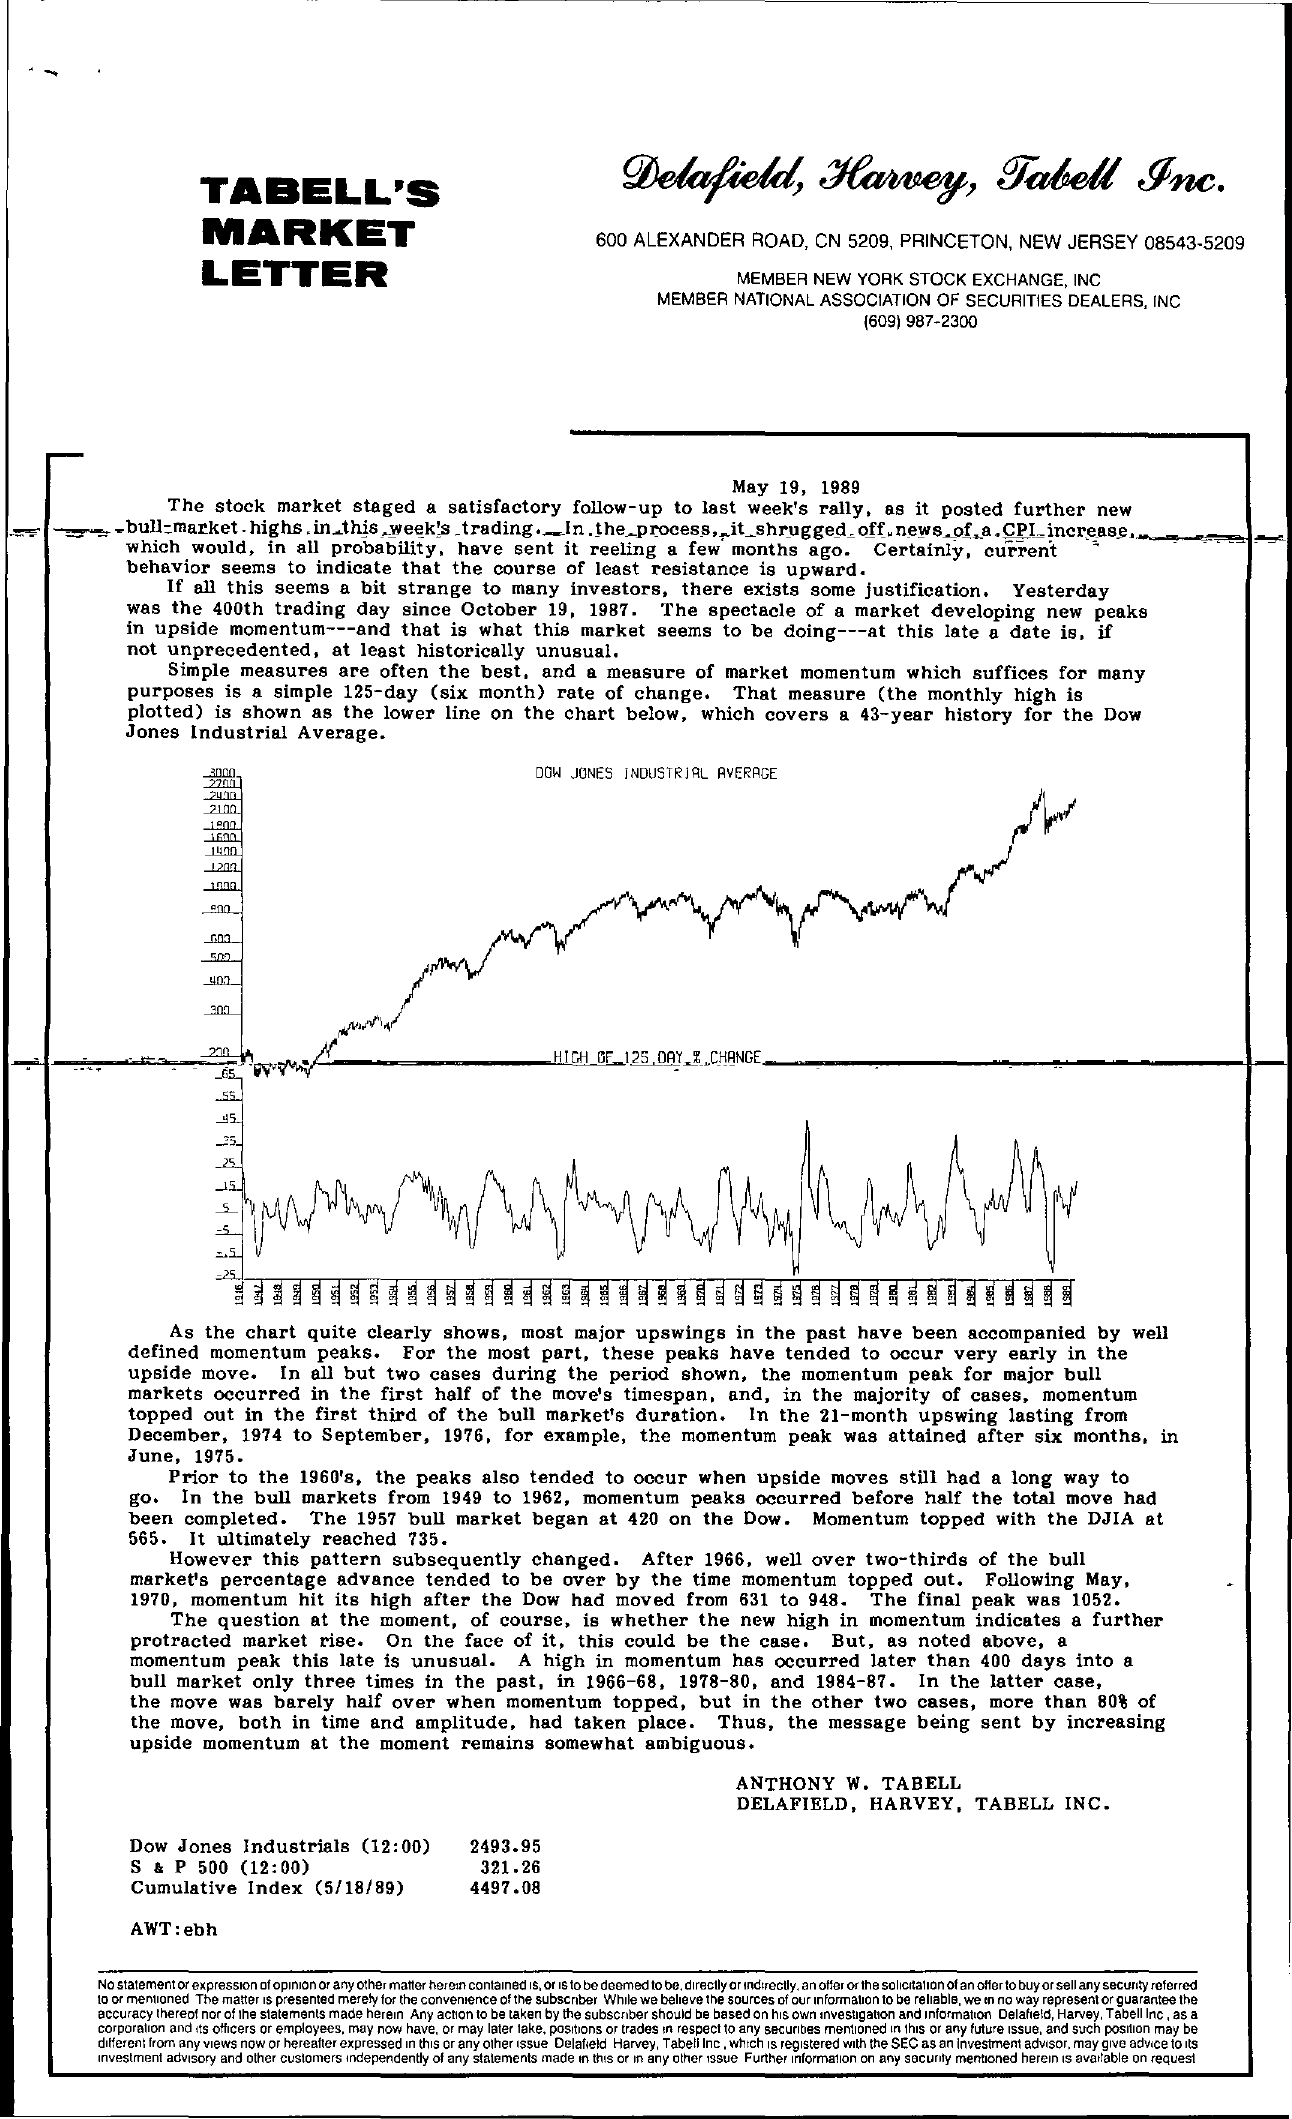 Tabell's Market Letter - May 19, 1989